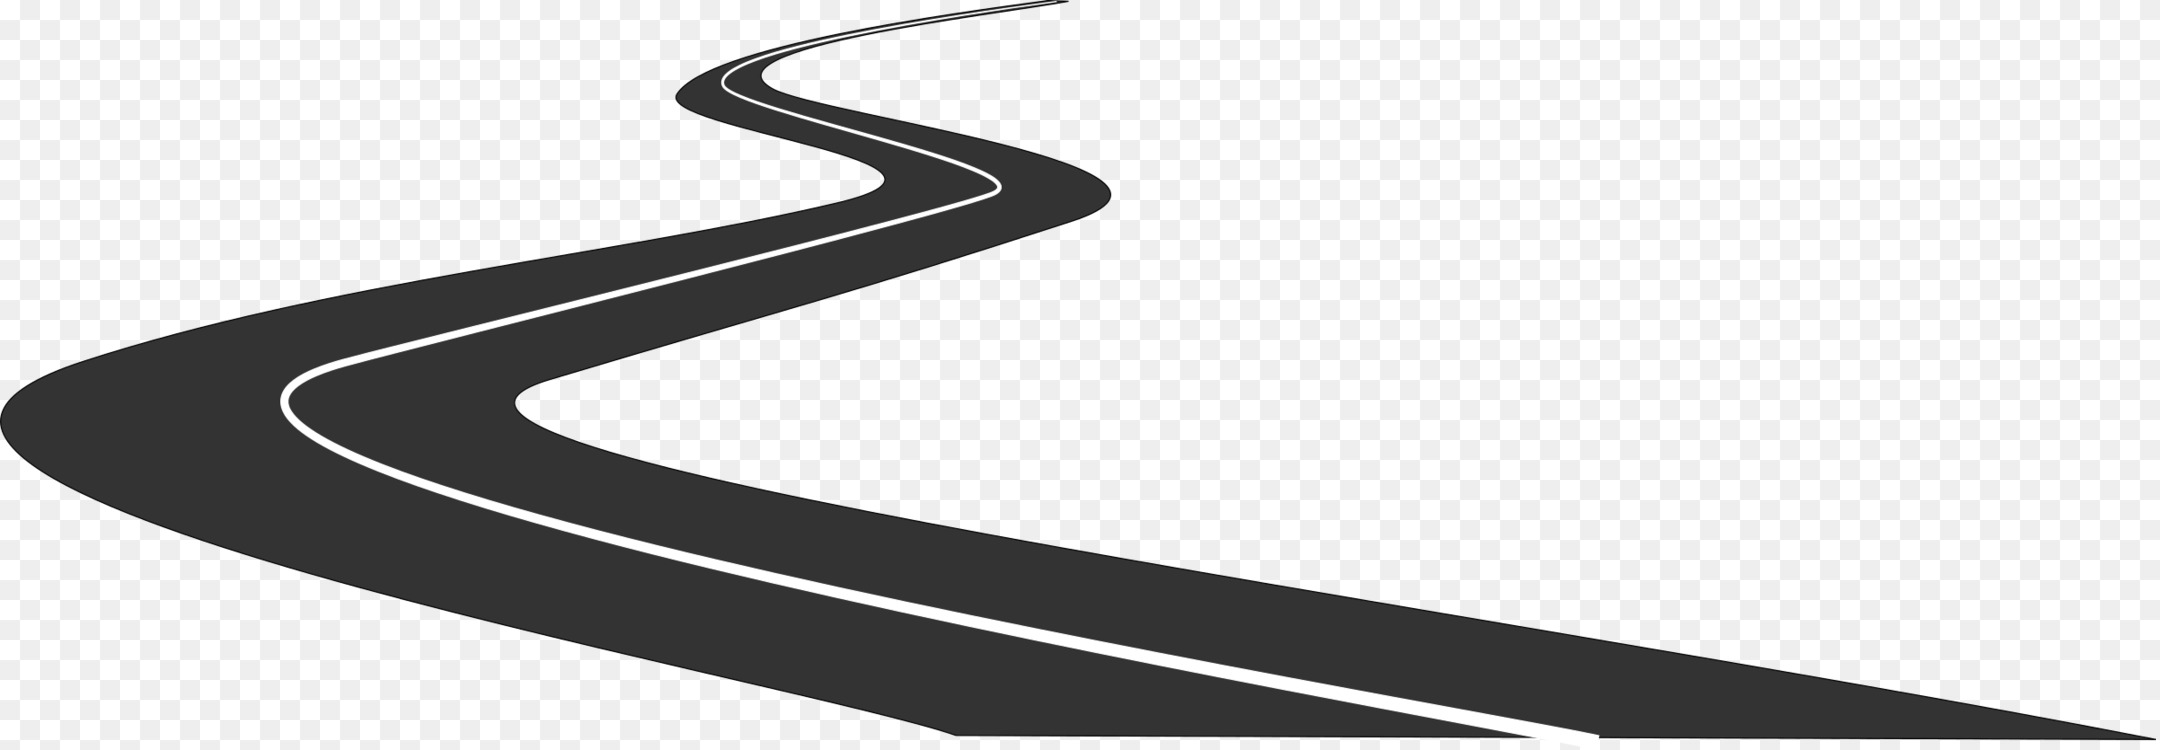 Free Png Roads Highways & Free Roads Highways.png Transparent Images.